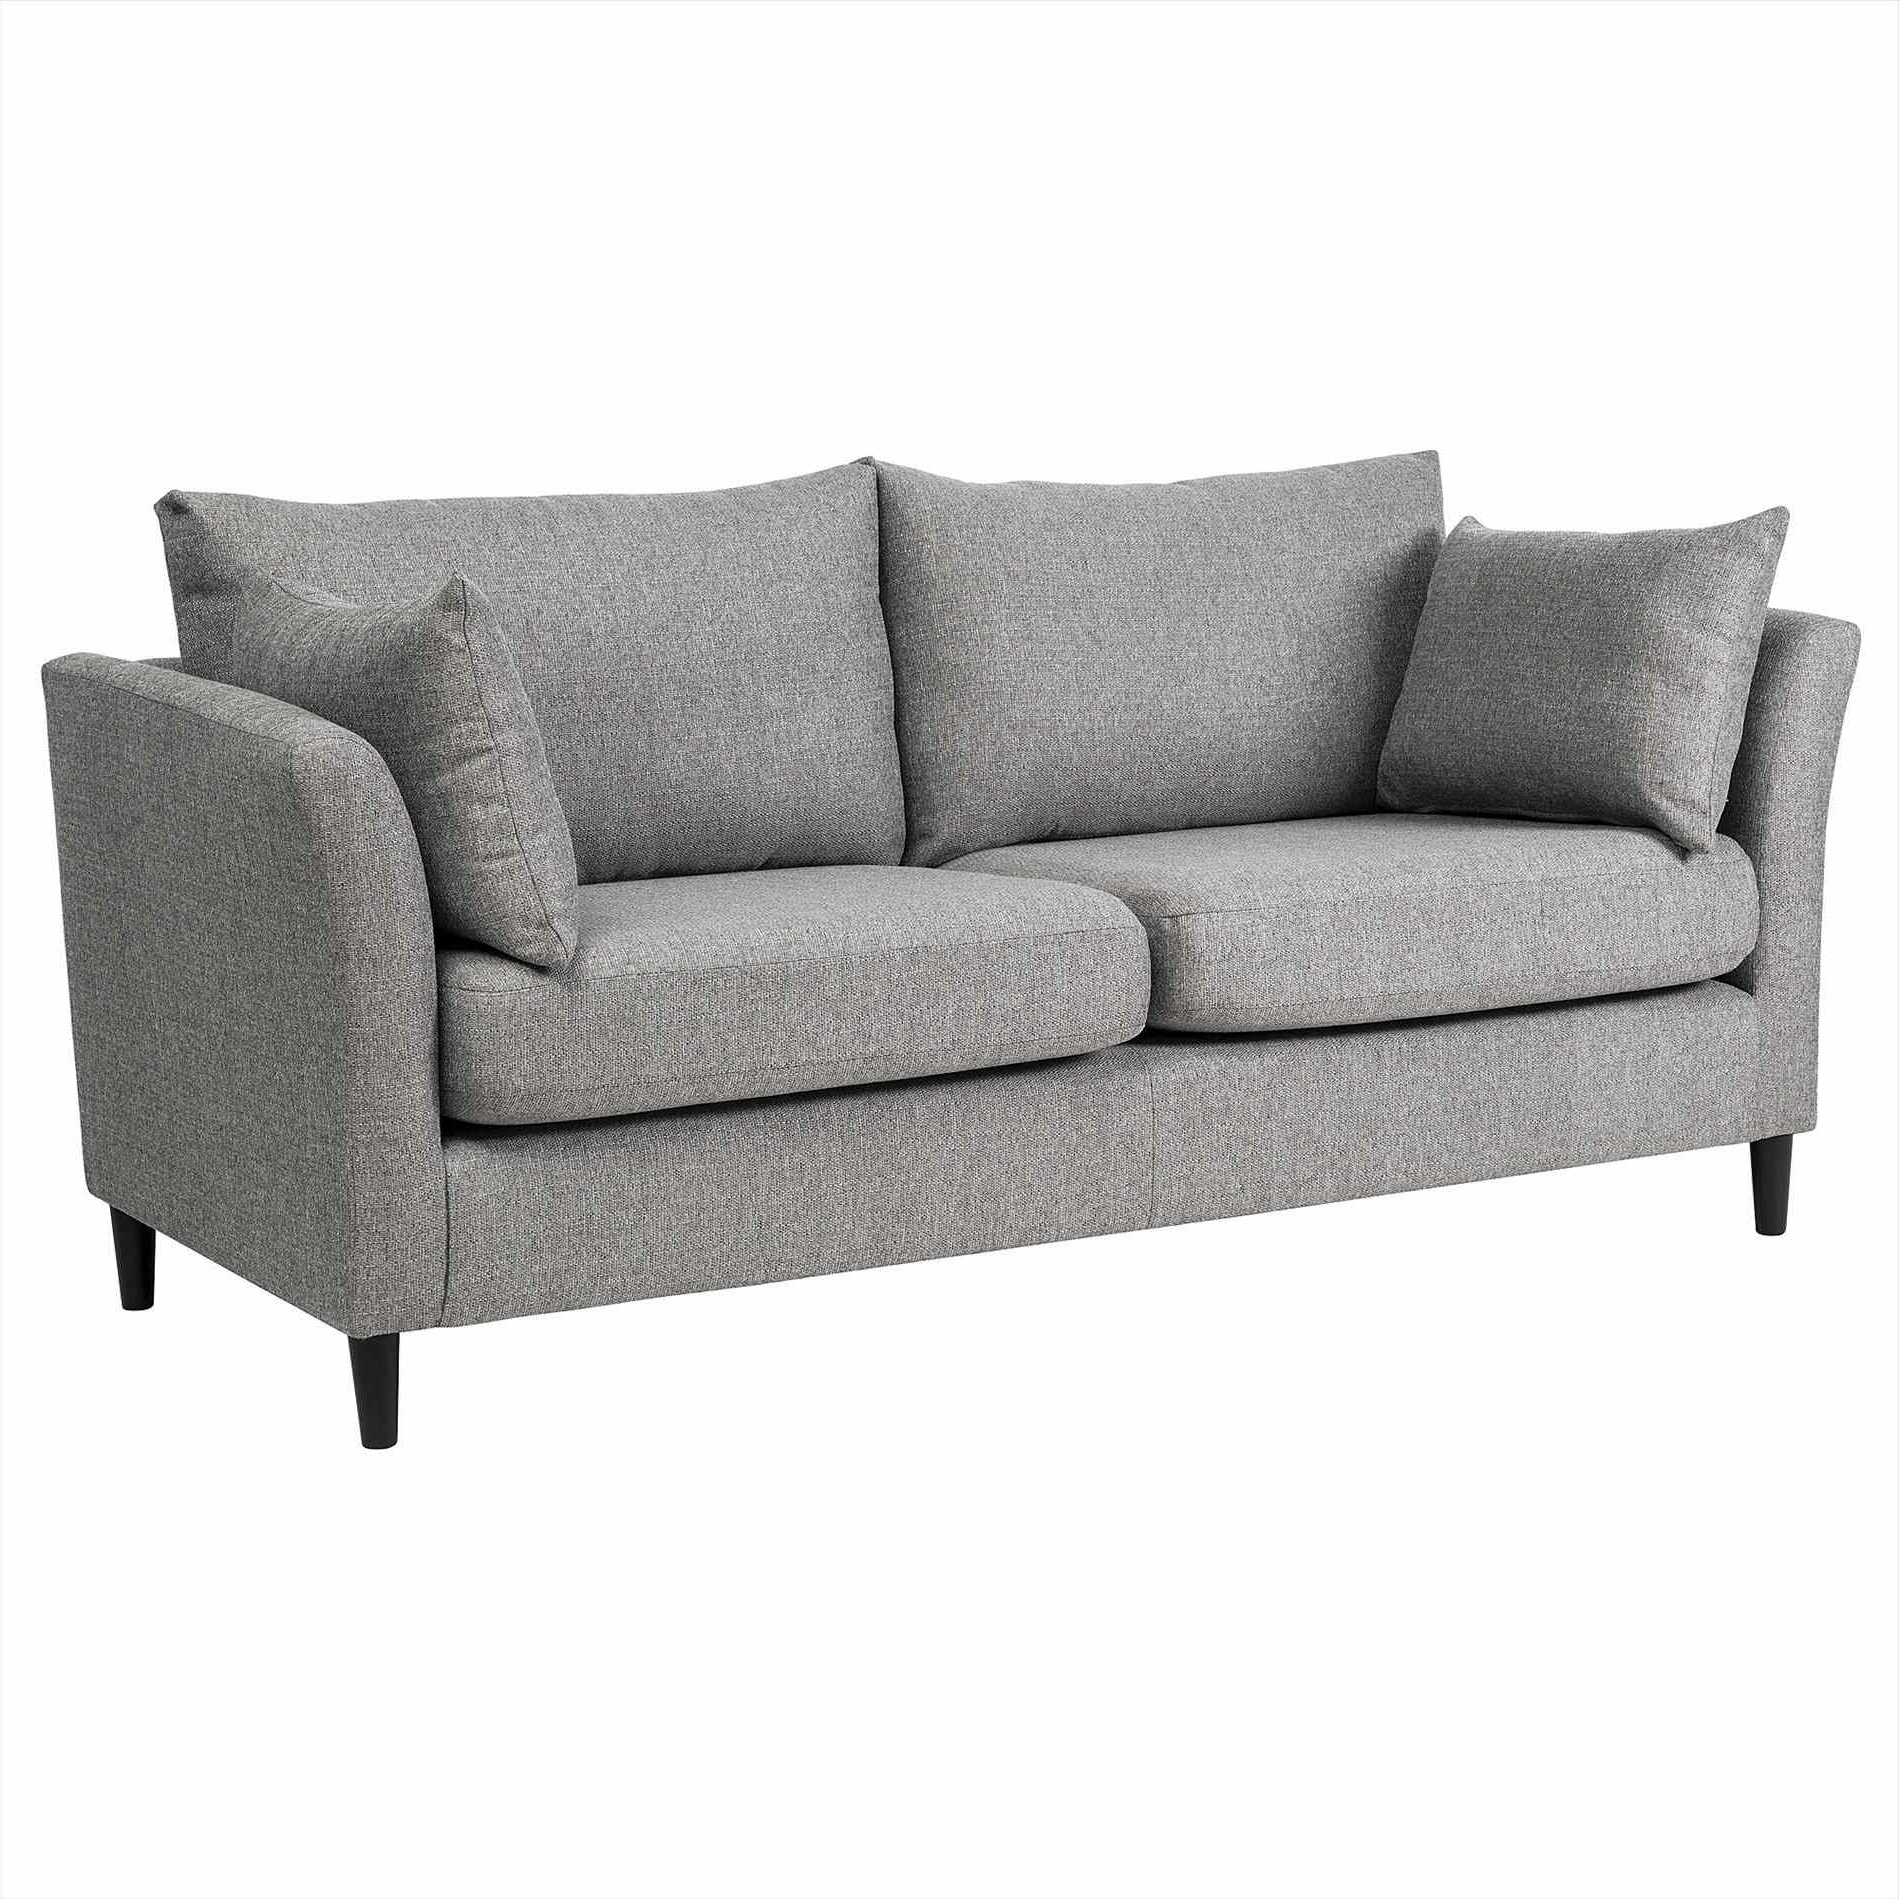 View Photos Of Ikea Small Sofas